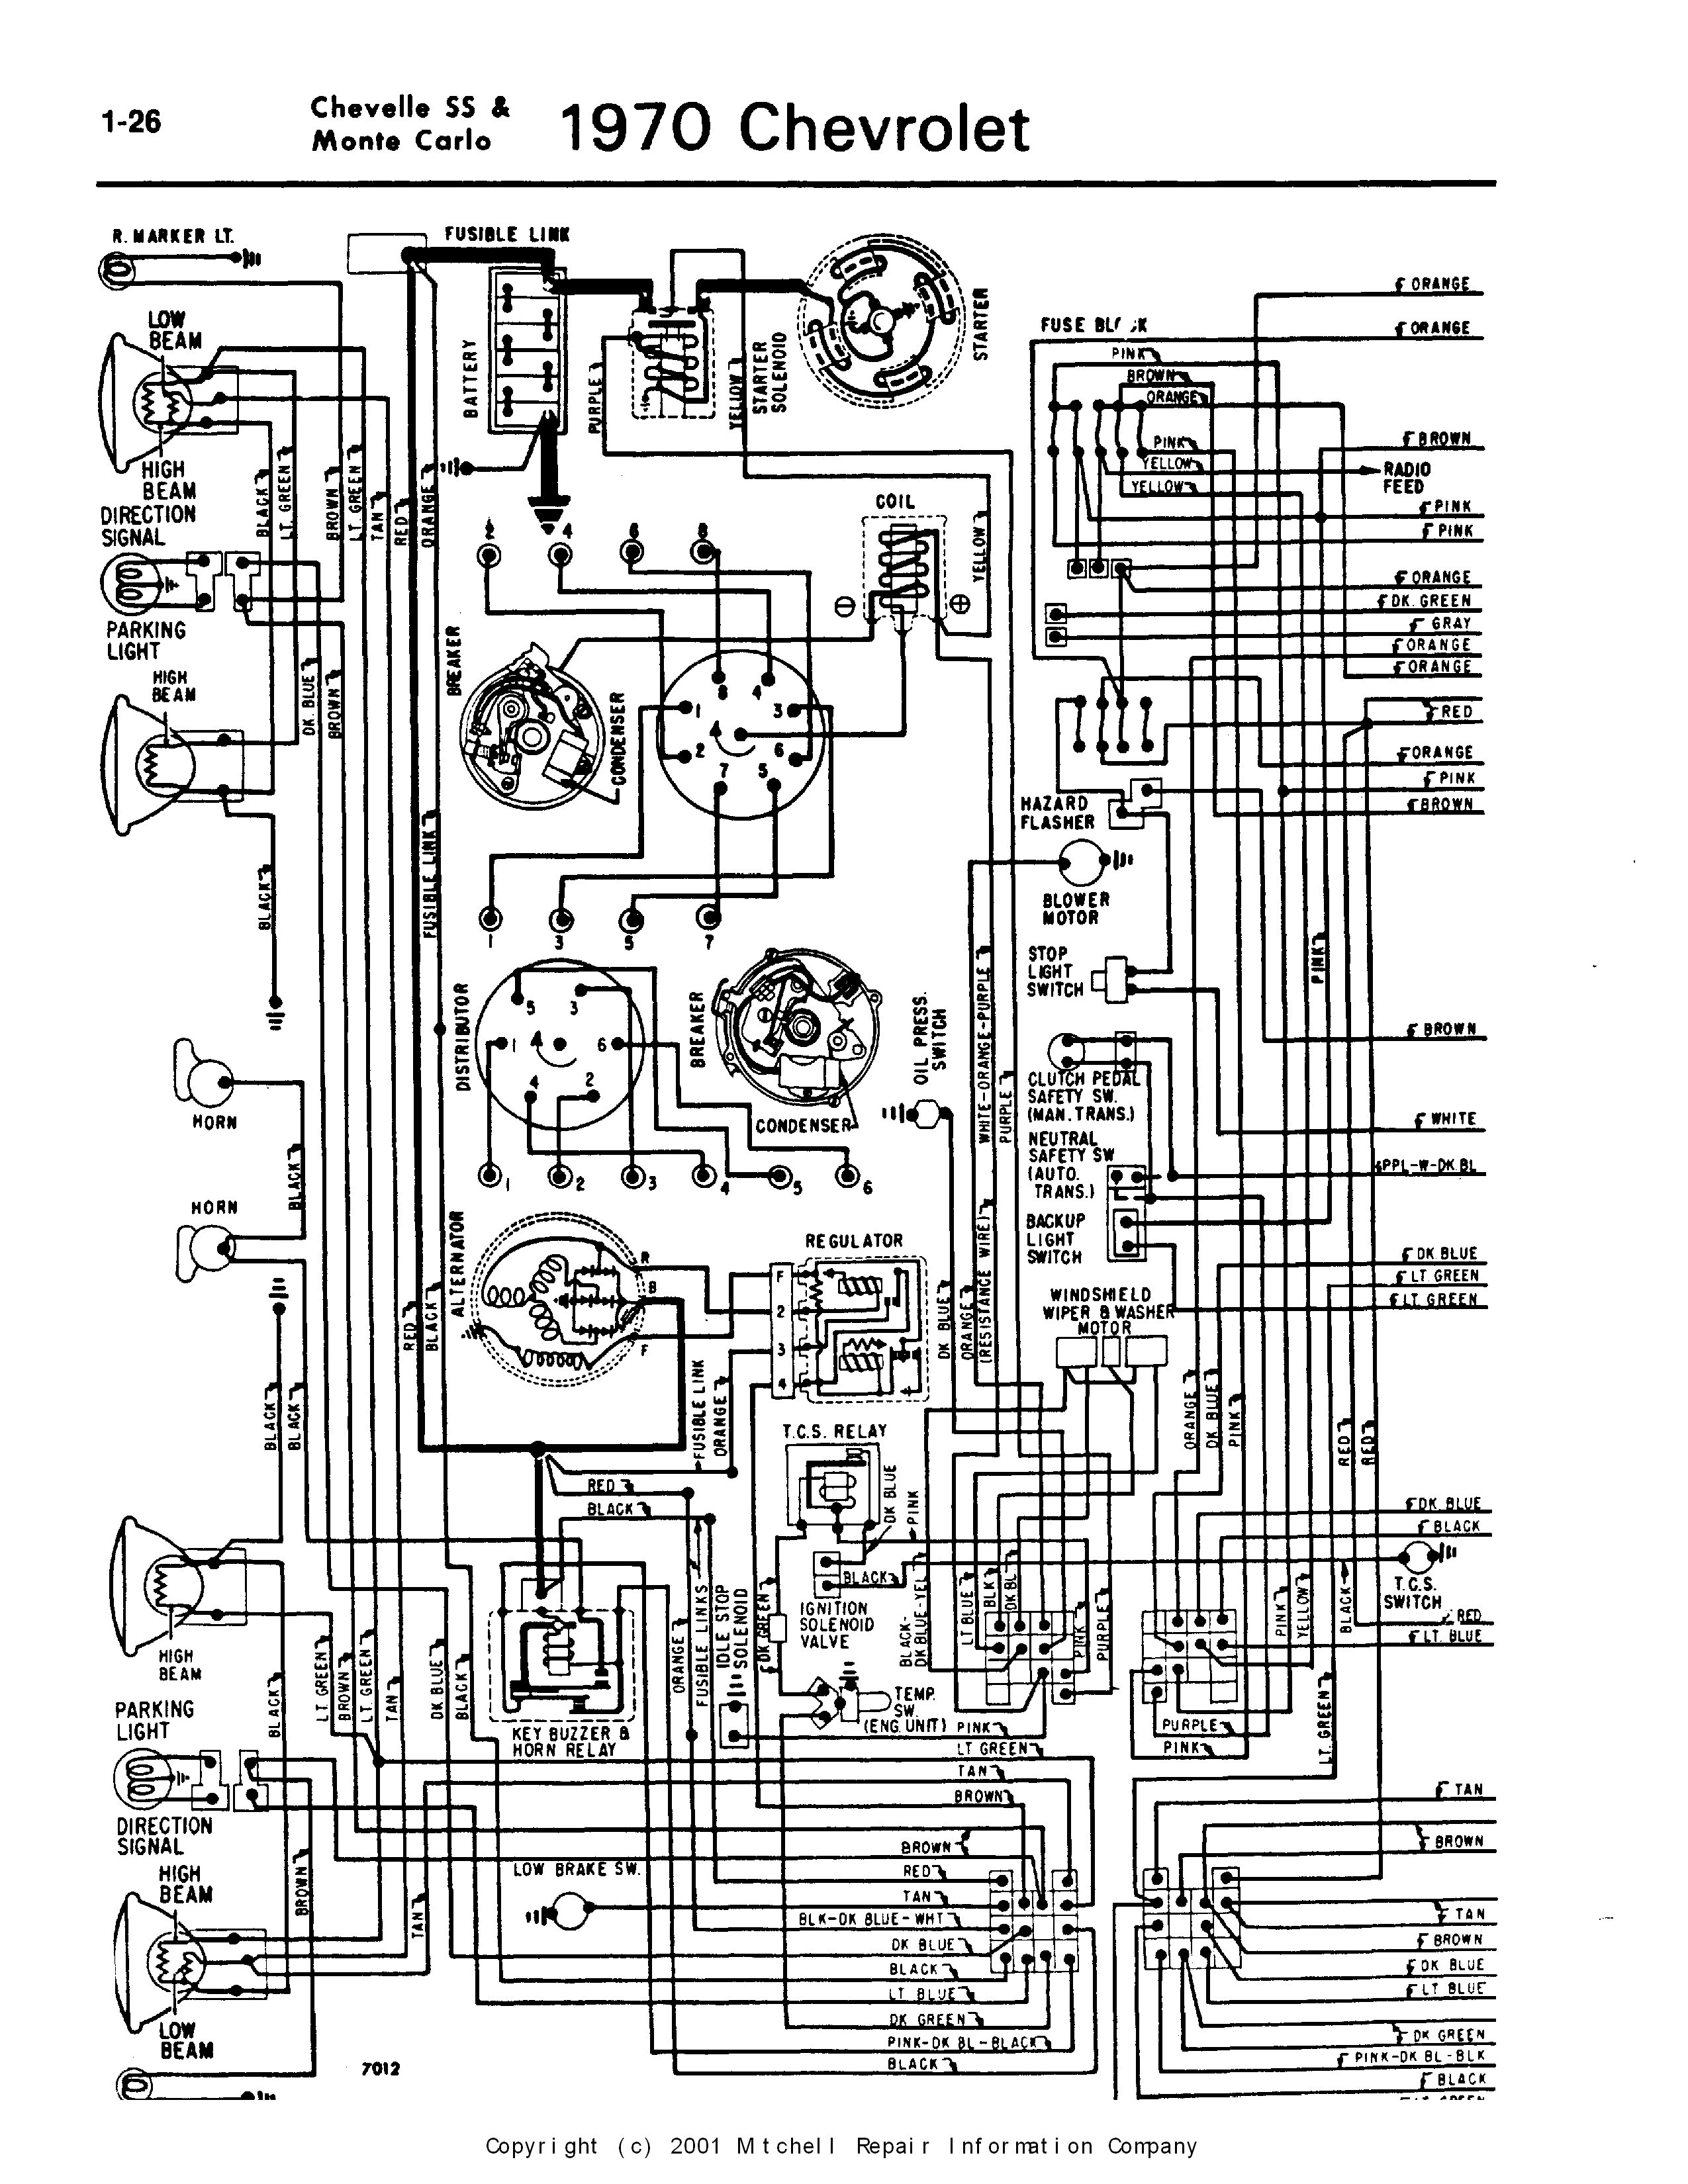 hight resolution of 68 impala convertible wiring diagram general wiring diagram data1968 nova wiring diagram free picture schematic wiring